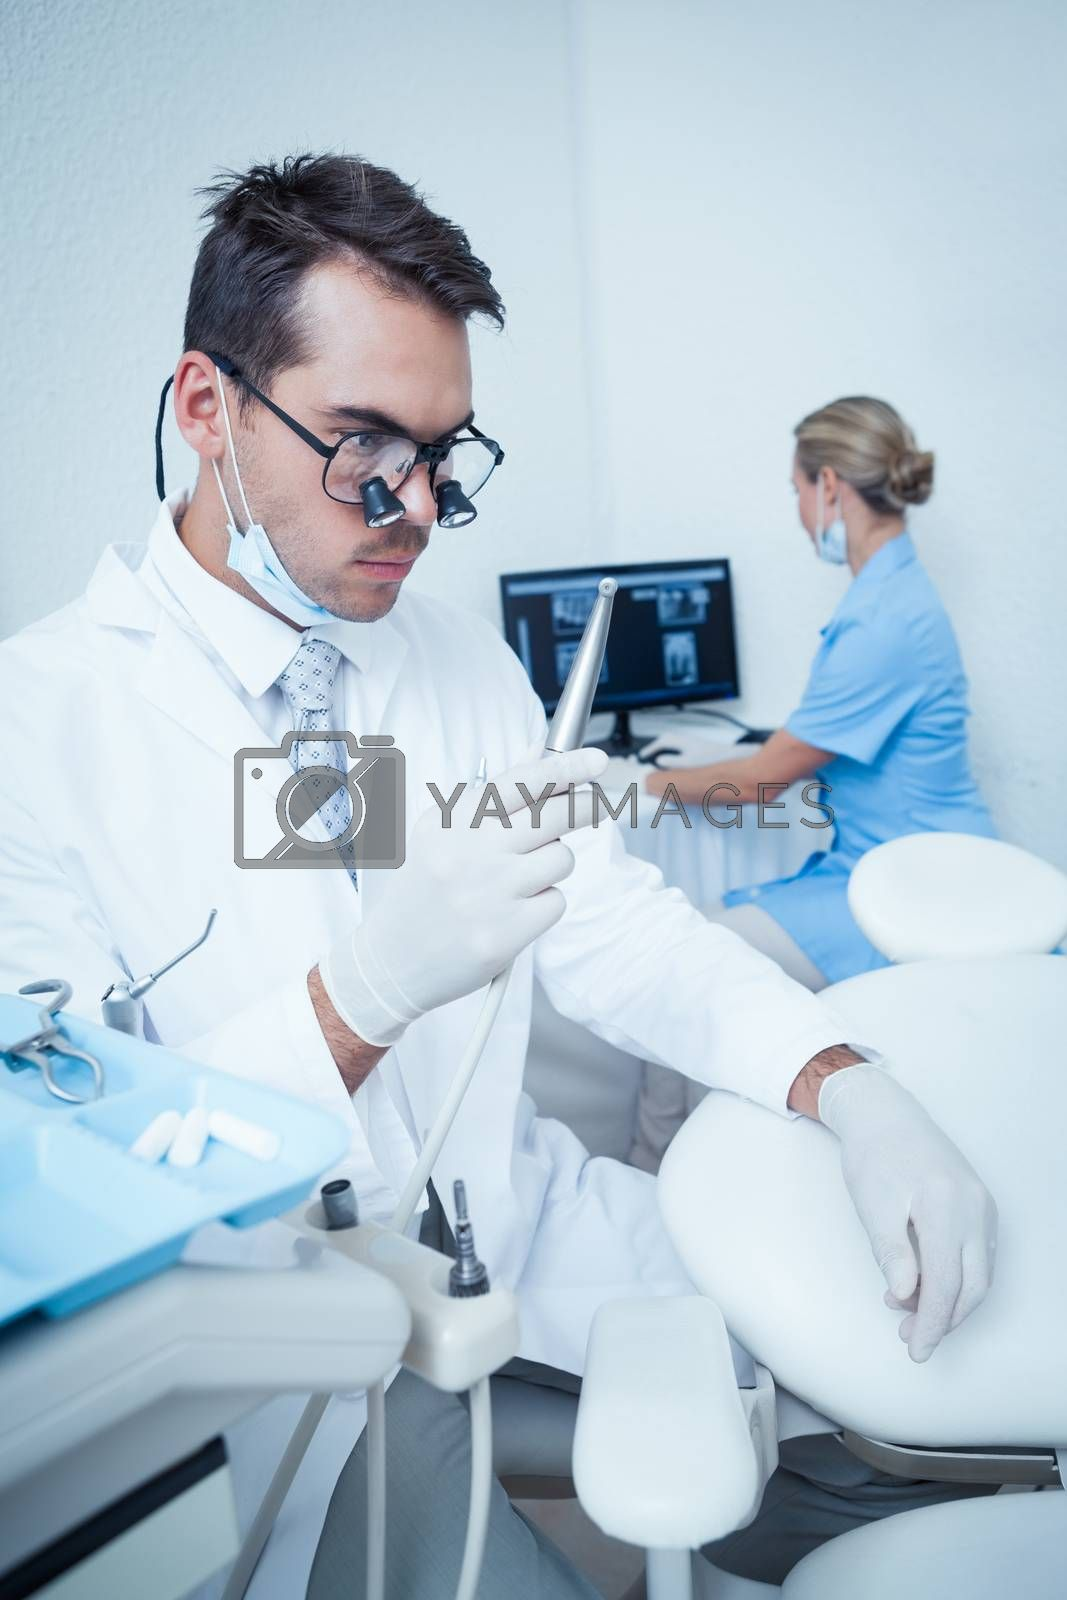 Dentist looking at dental drill by Wavebreakmedia